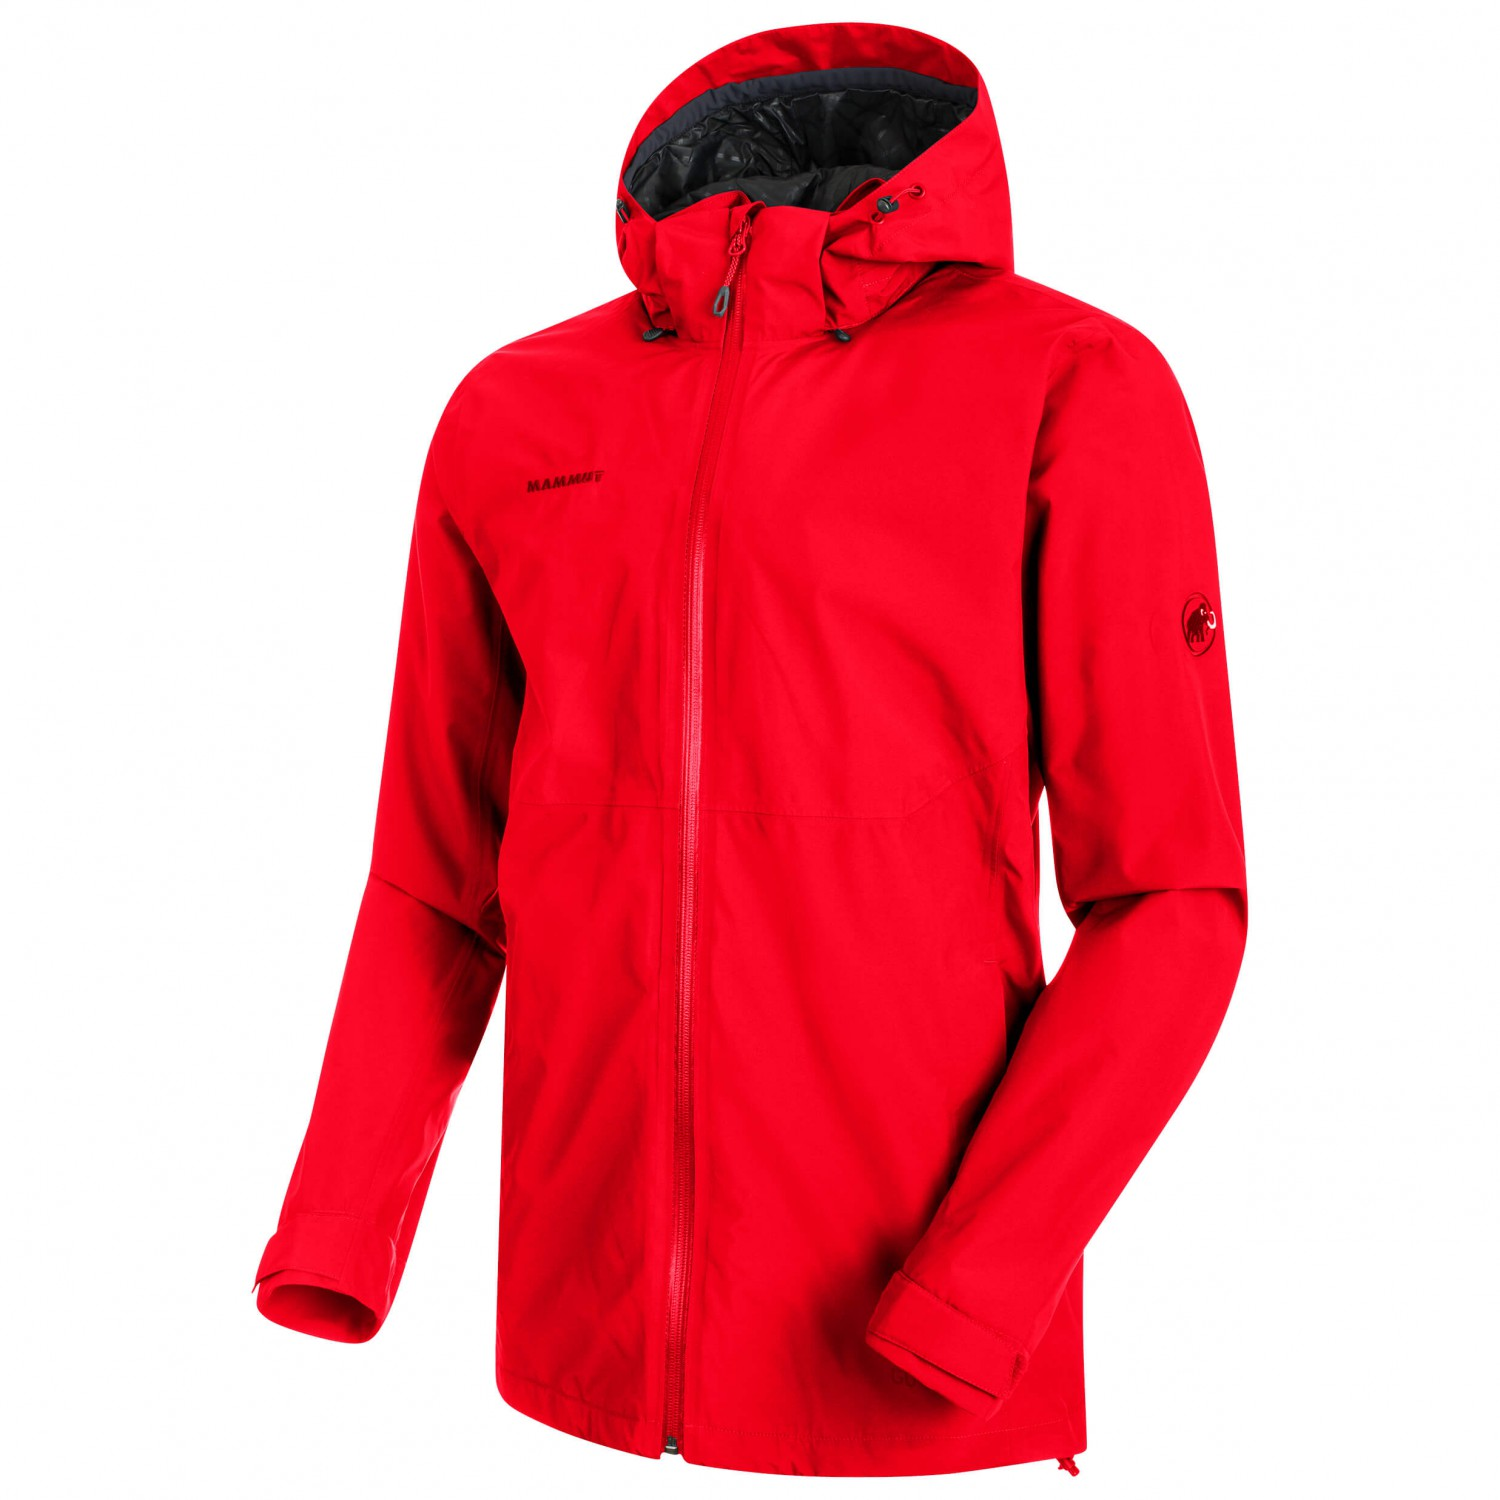 purchase cheap 9184e ec795 Outdoor Bekleidung Regenjacke Ayako Tour HS Hooded Jacket ...